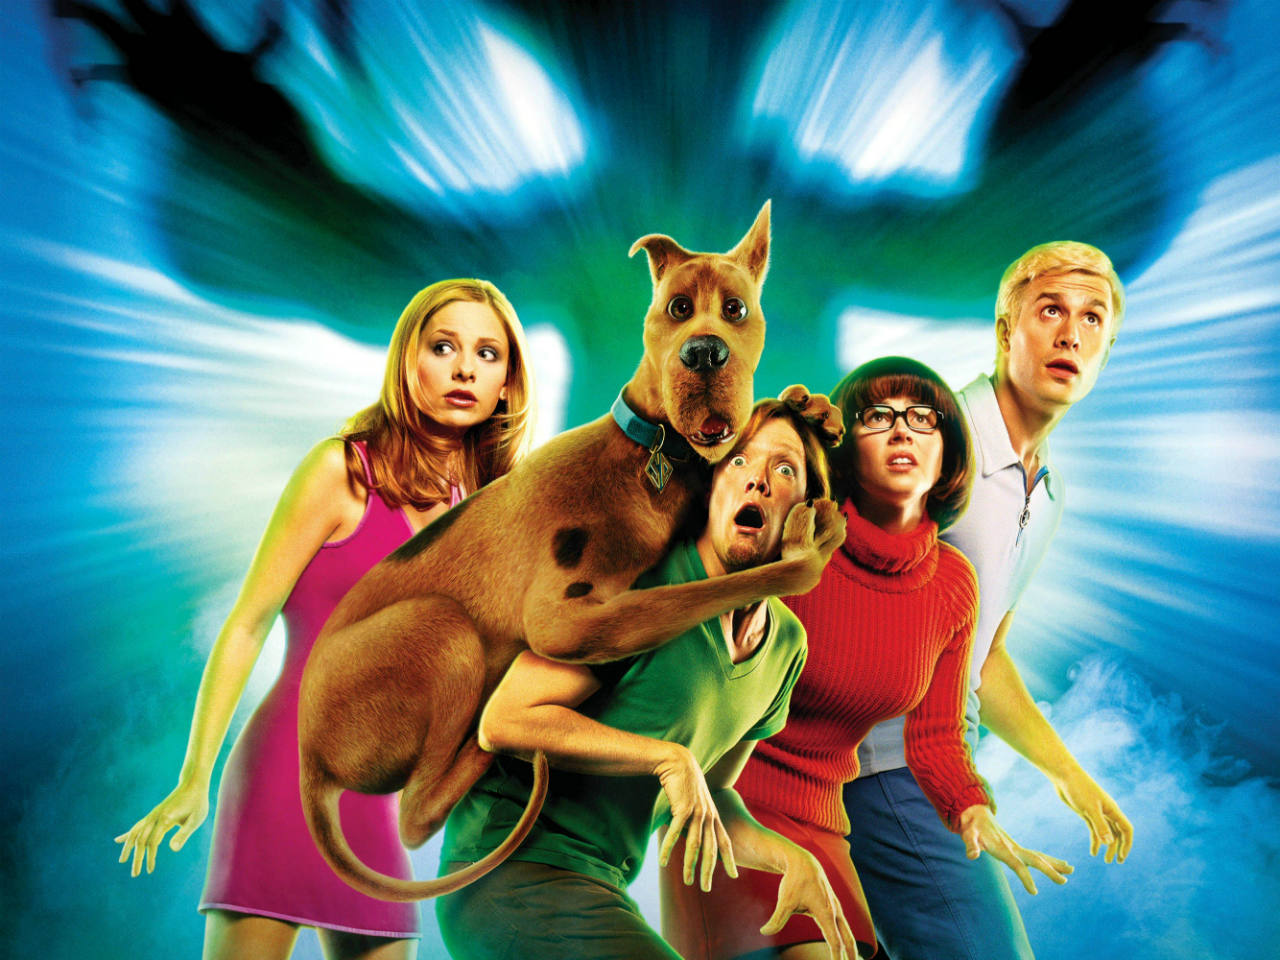 A poster for the kids' movie Scooby Doo